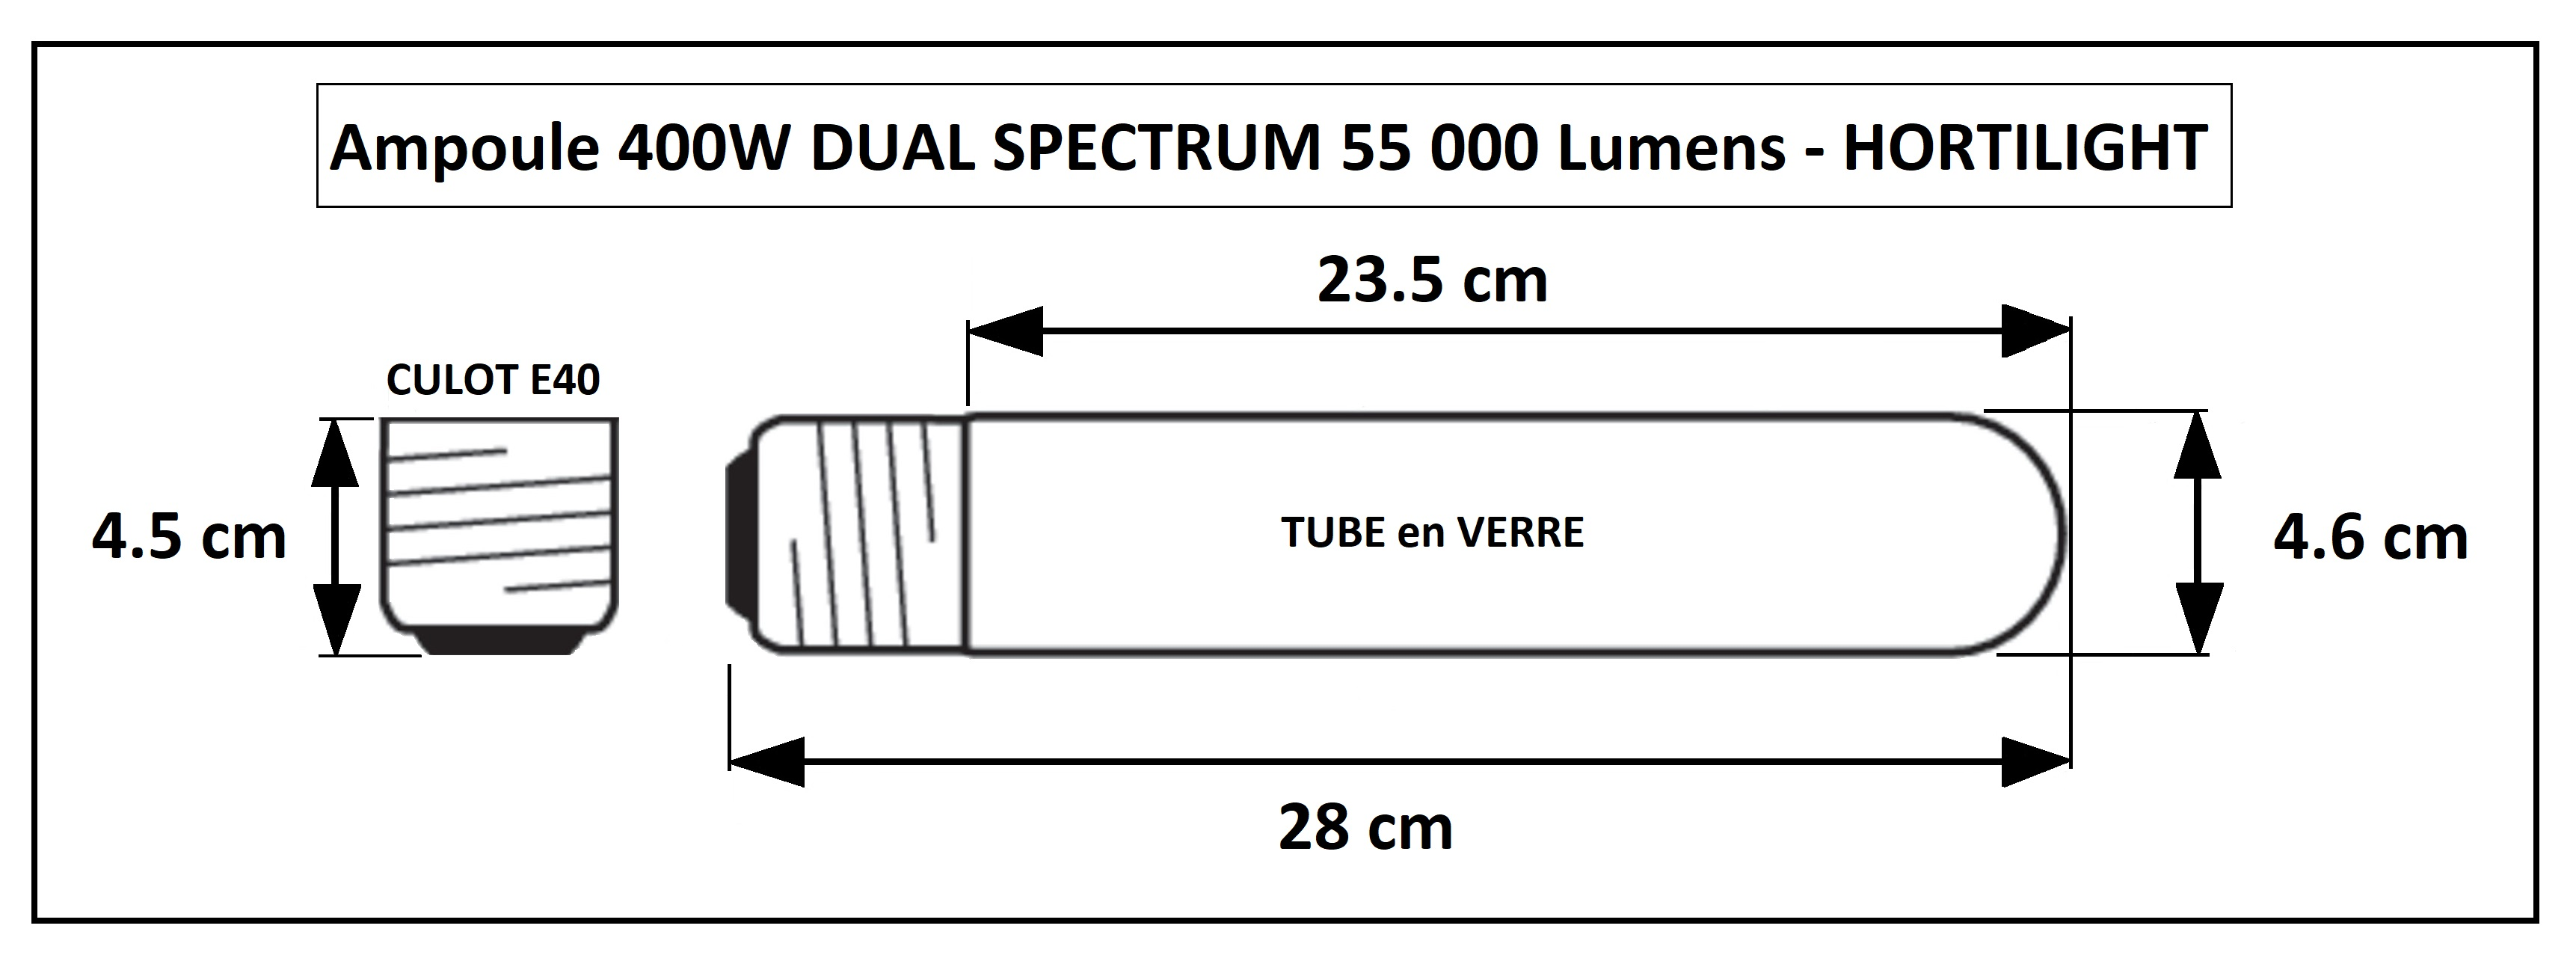 Lampe de culture indoor 400W Hortilight